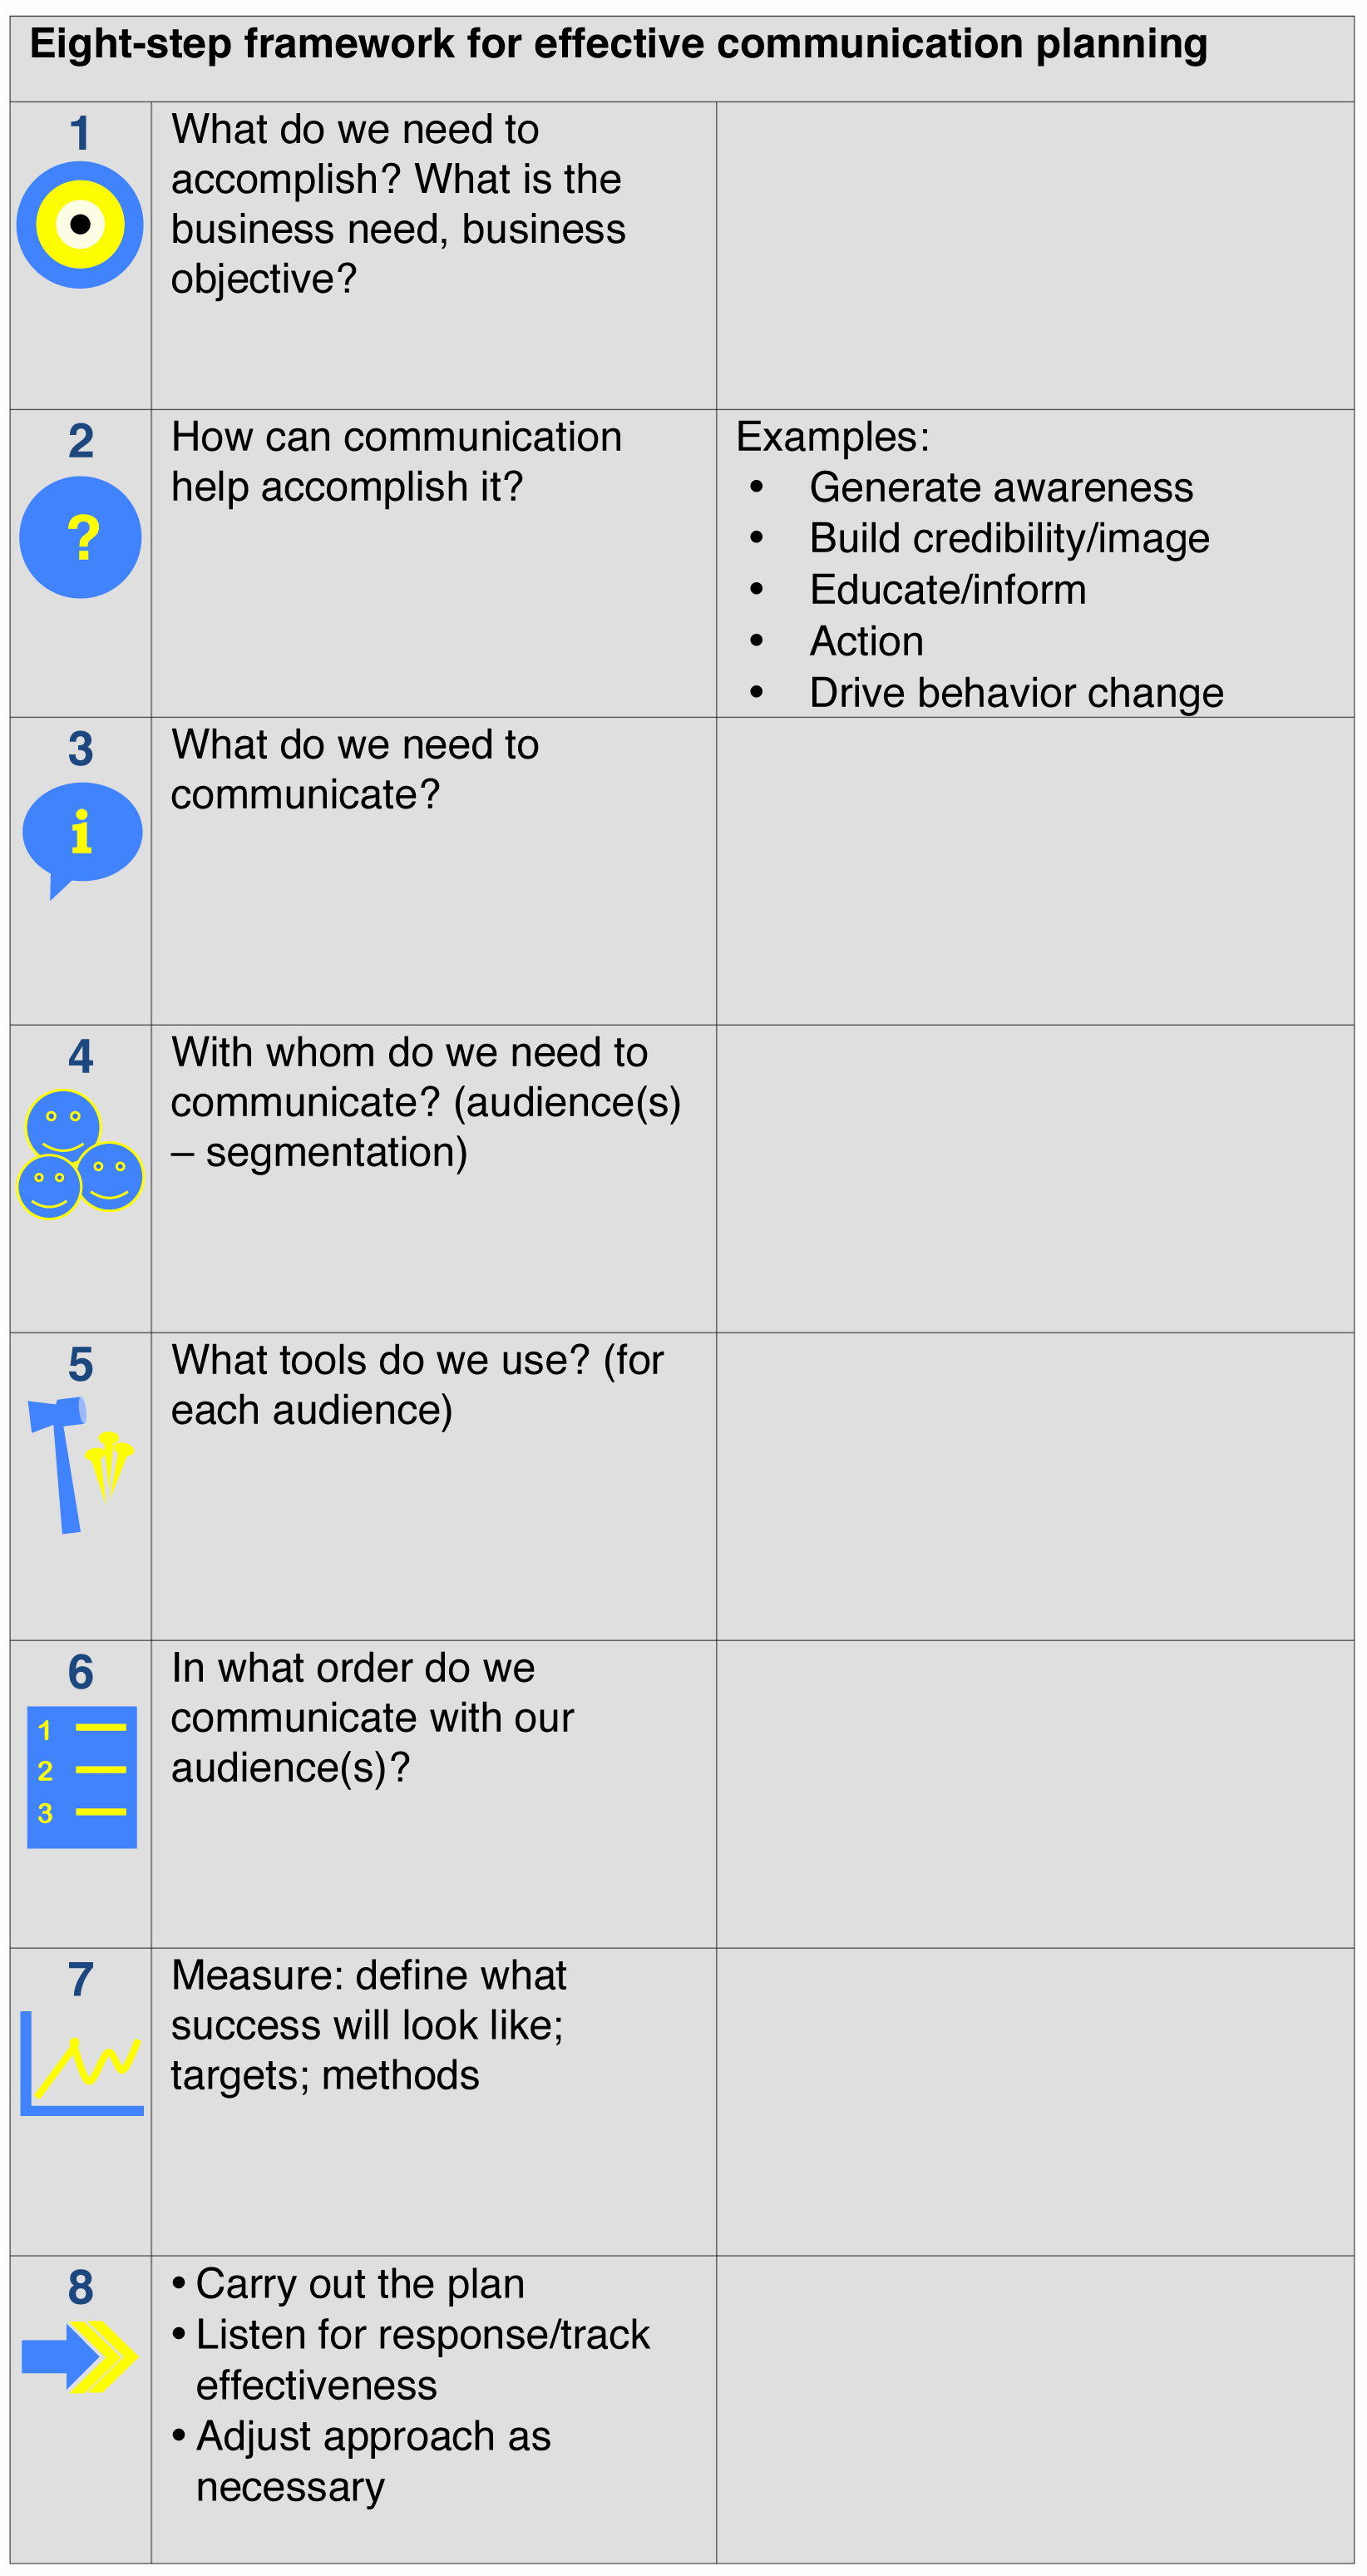 Internal Communications Plan Template Unique Effective Munication Planning An 8 Step Framework